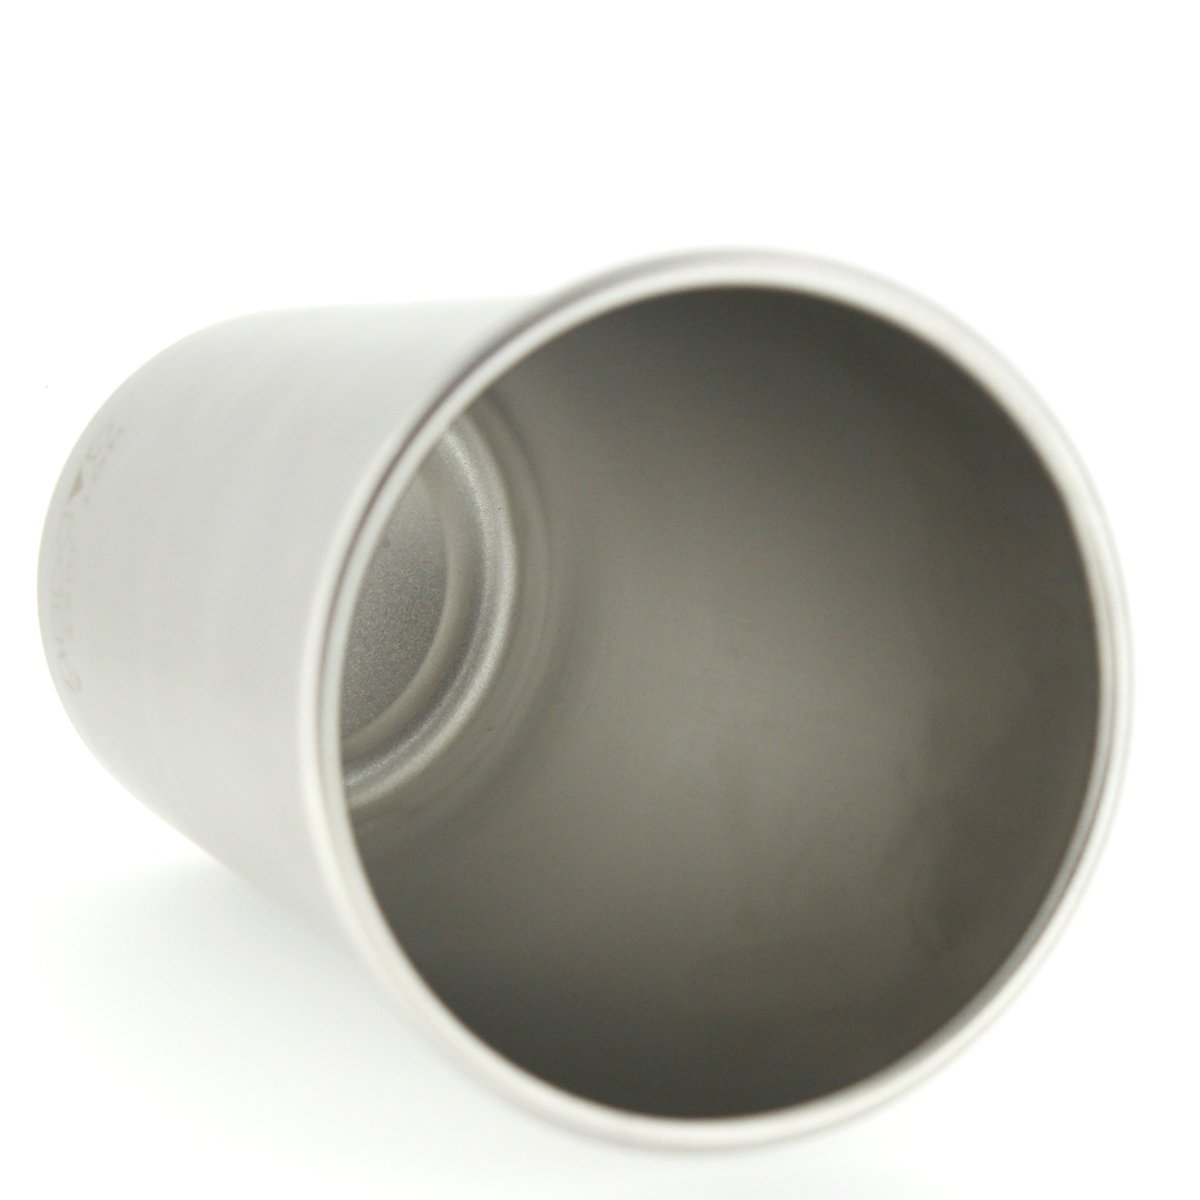 Stainless Steel Pint Cup #notjustagadget